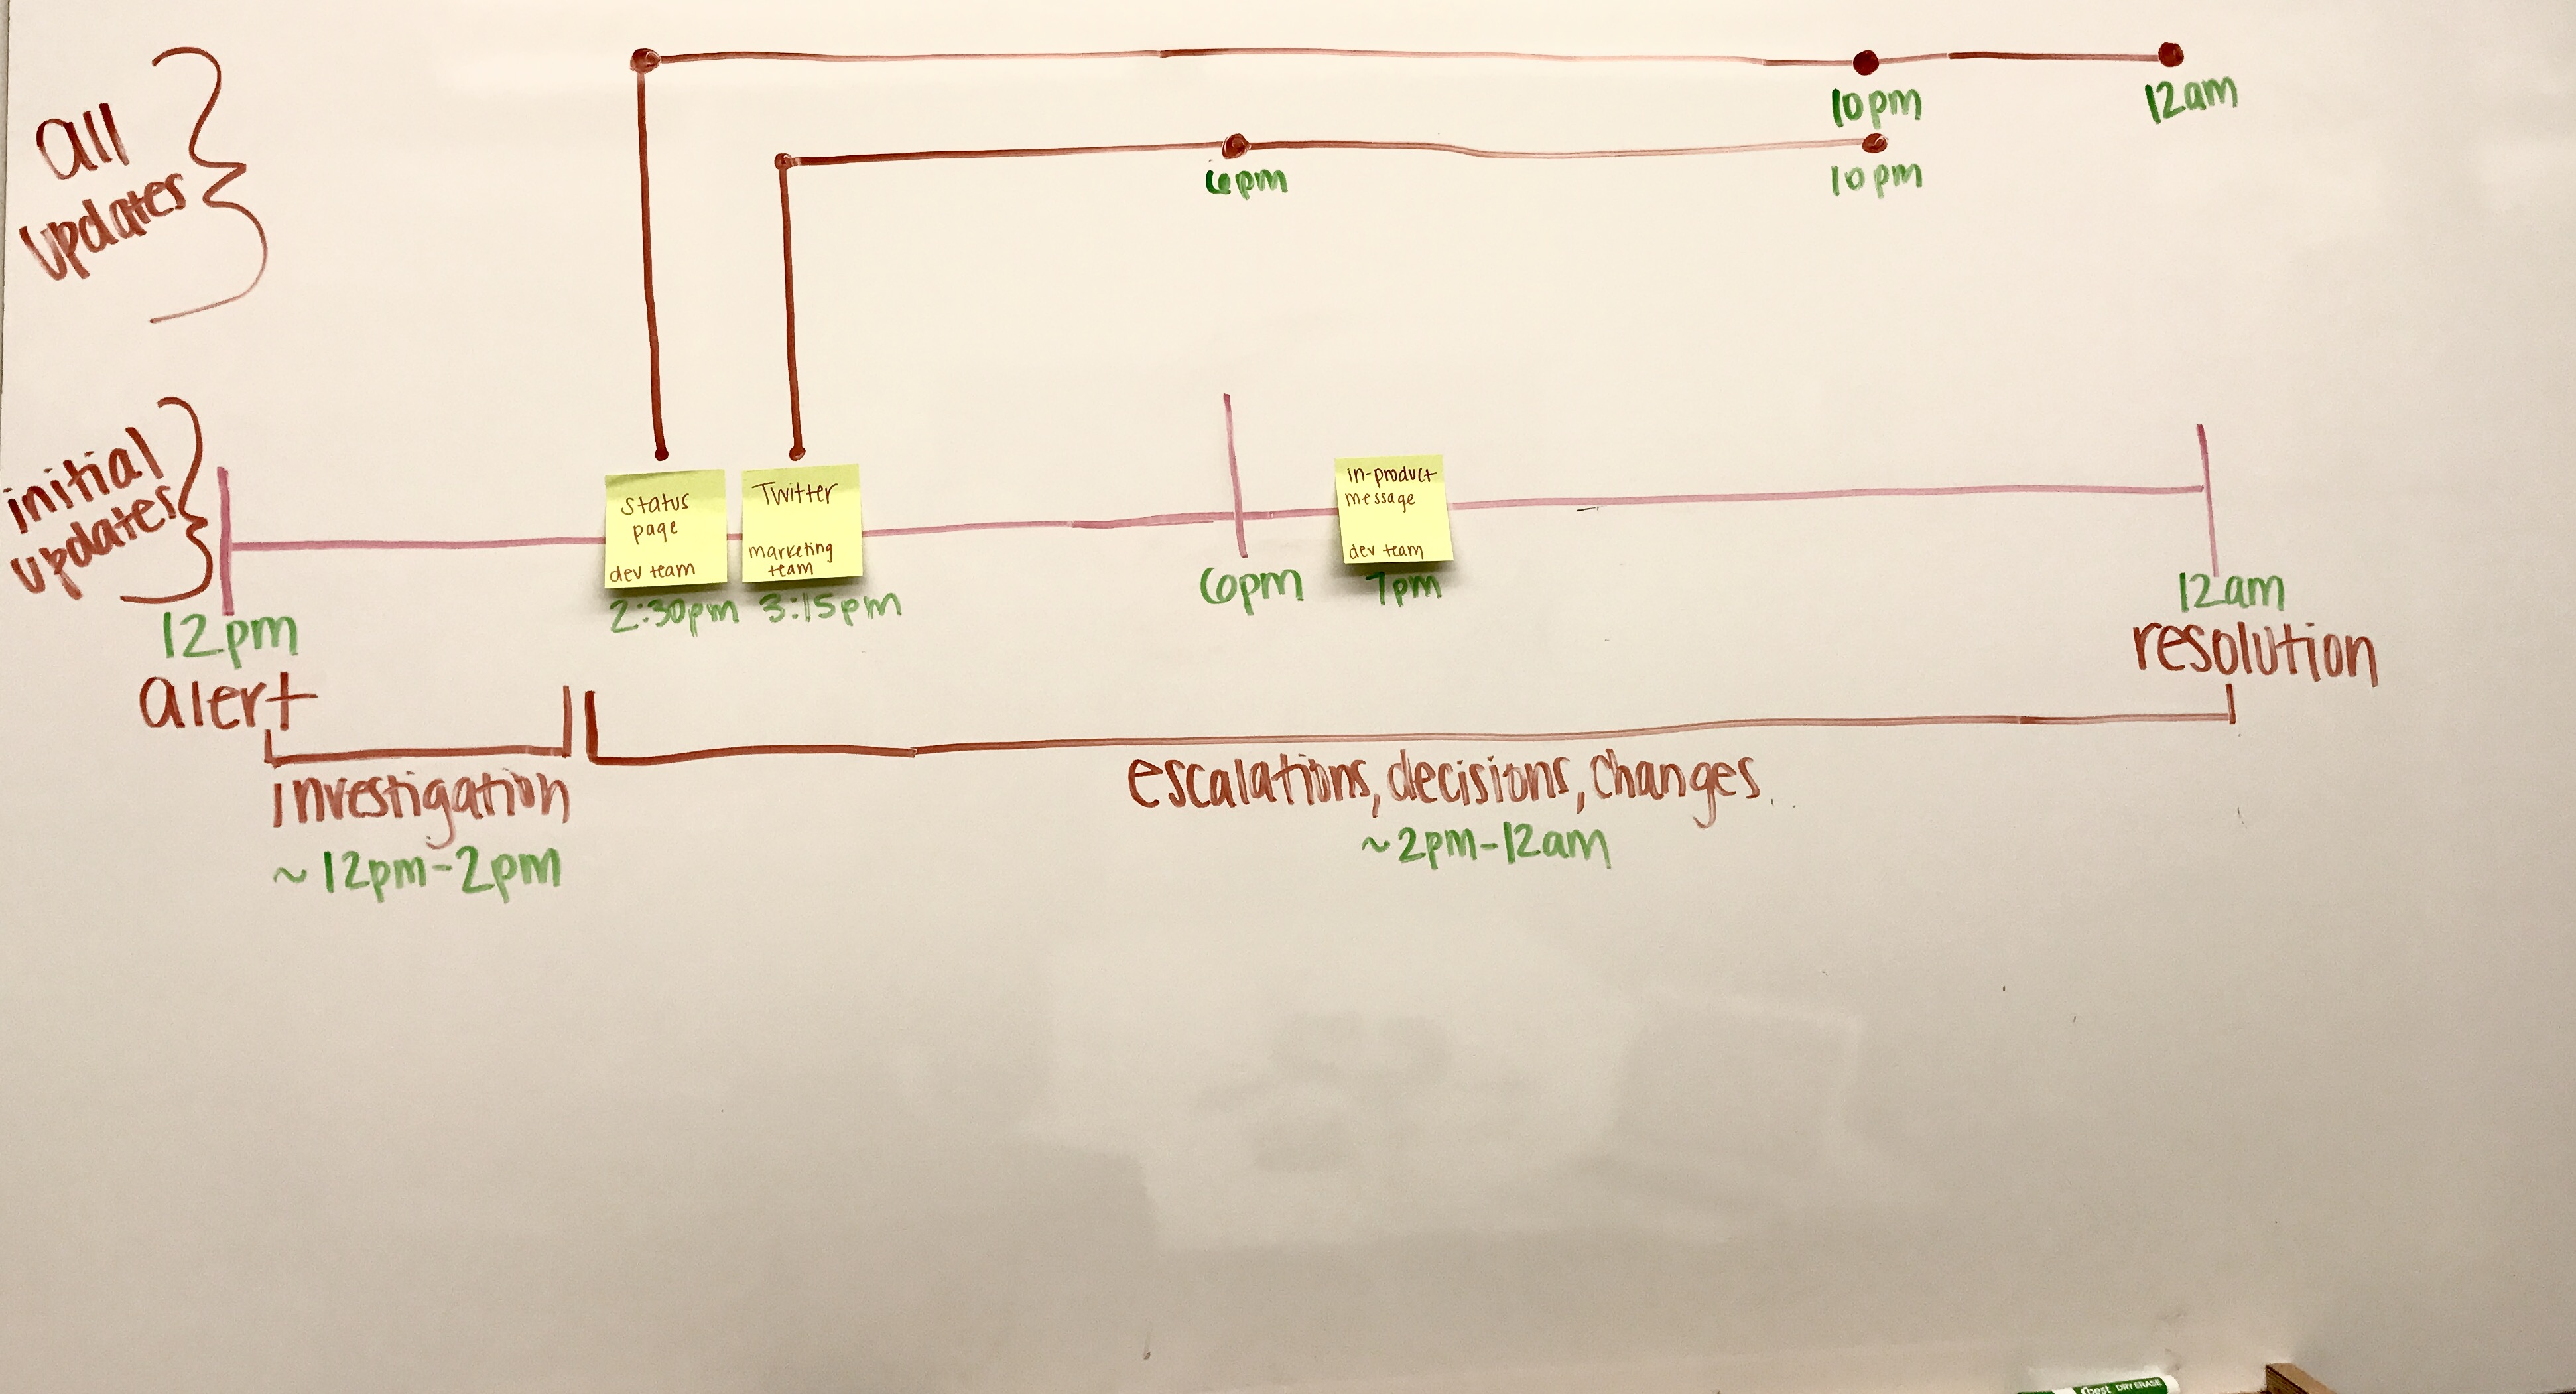 Example incident response communications timeline